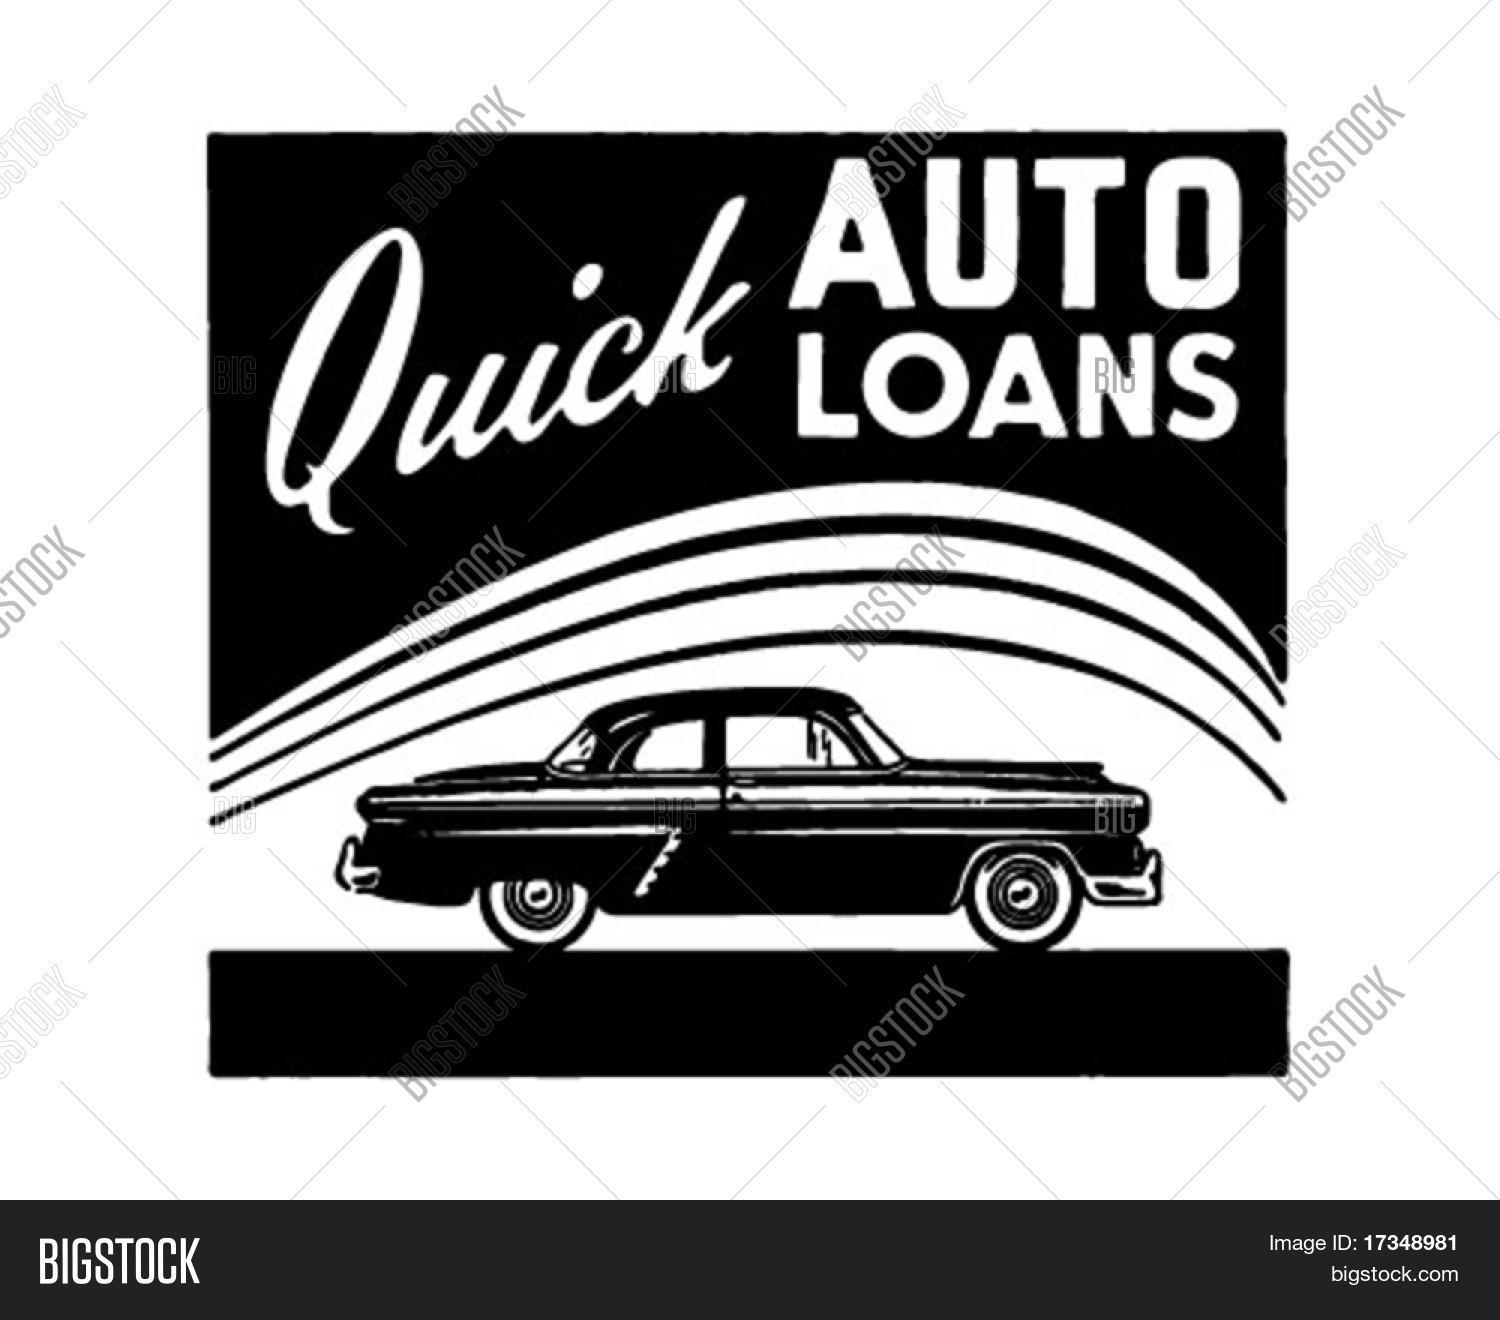 Quick Auto Loans - Retro Ad Art Vector & Photo | Bigstock